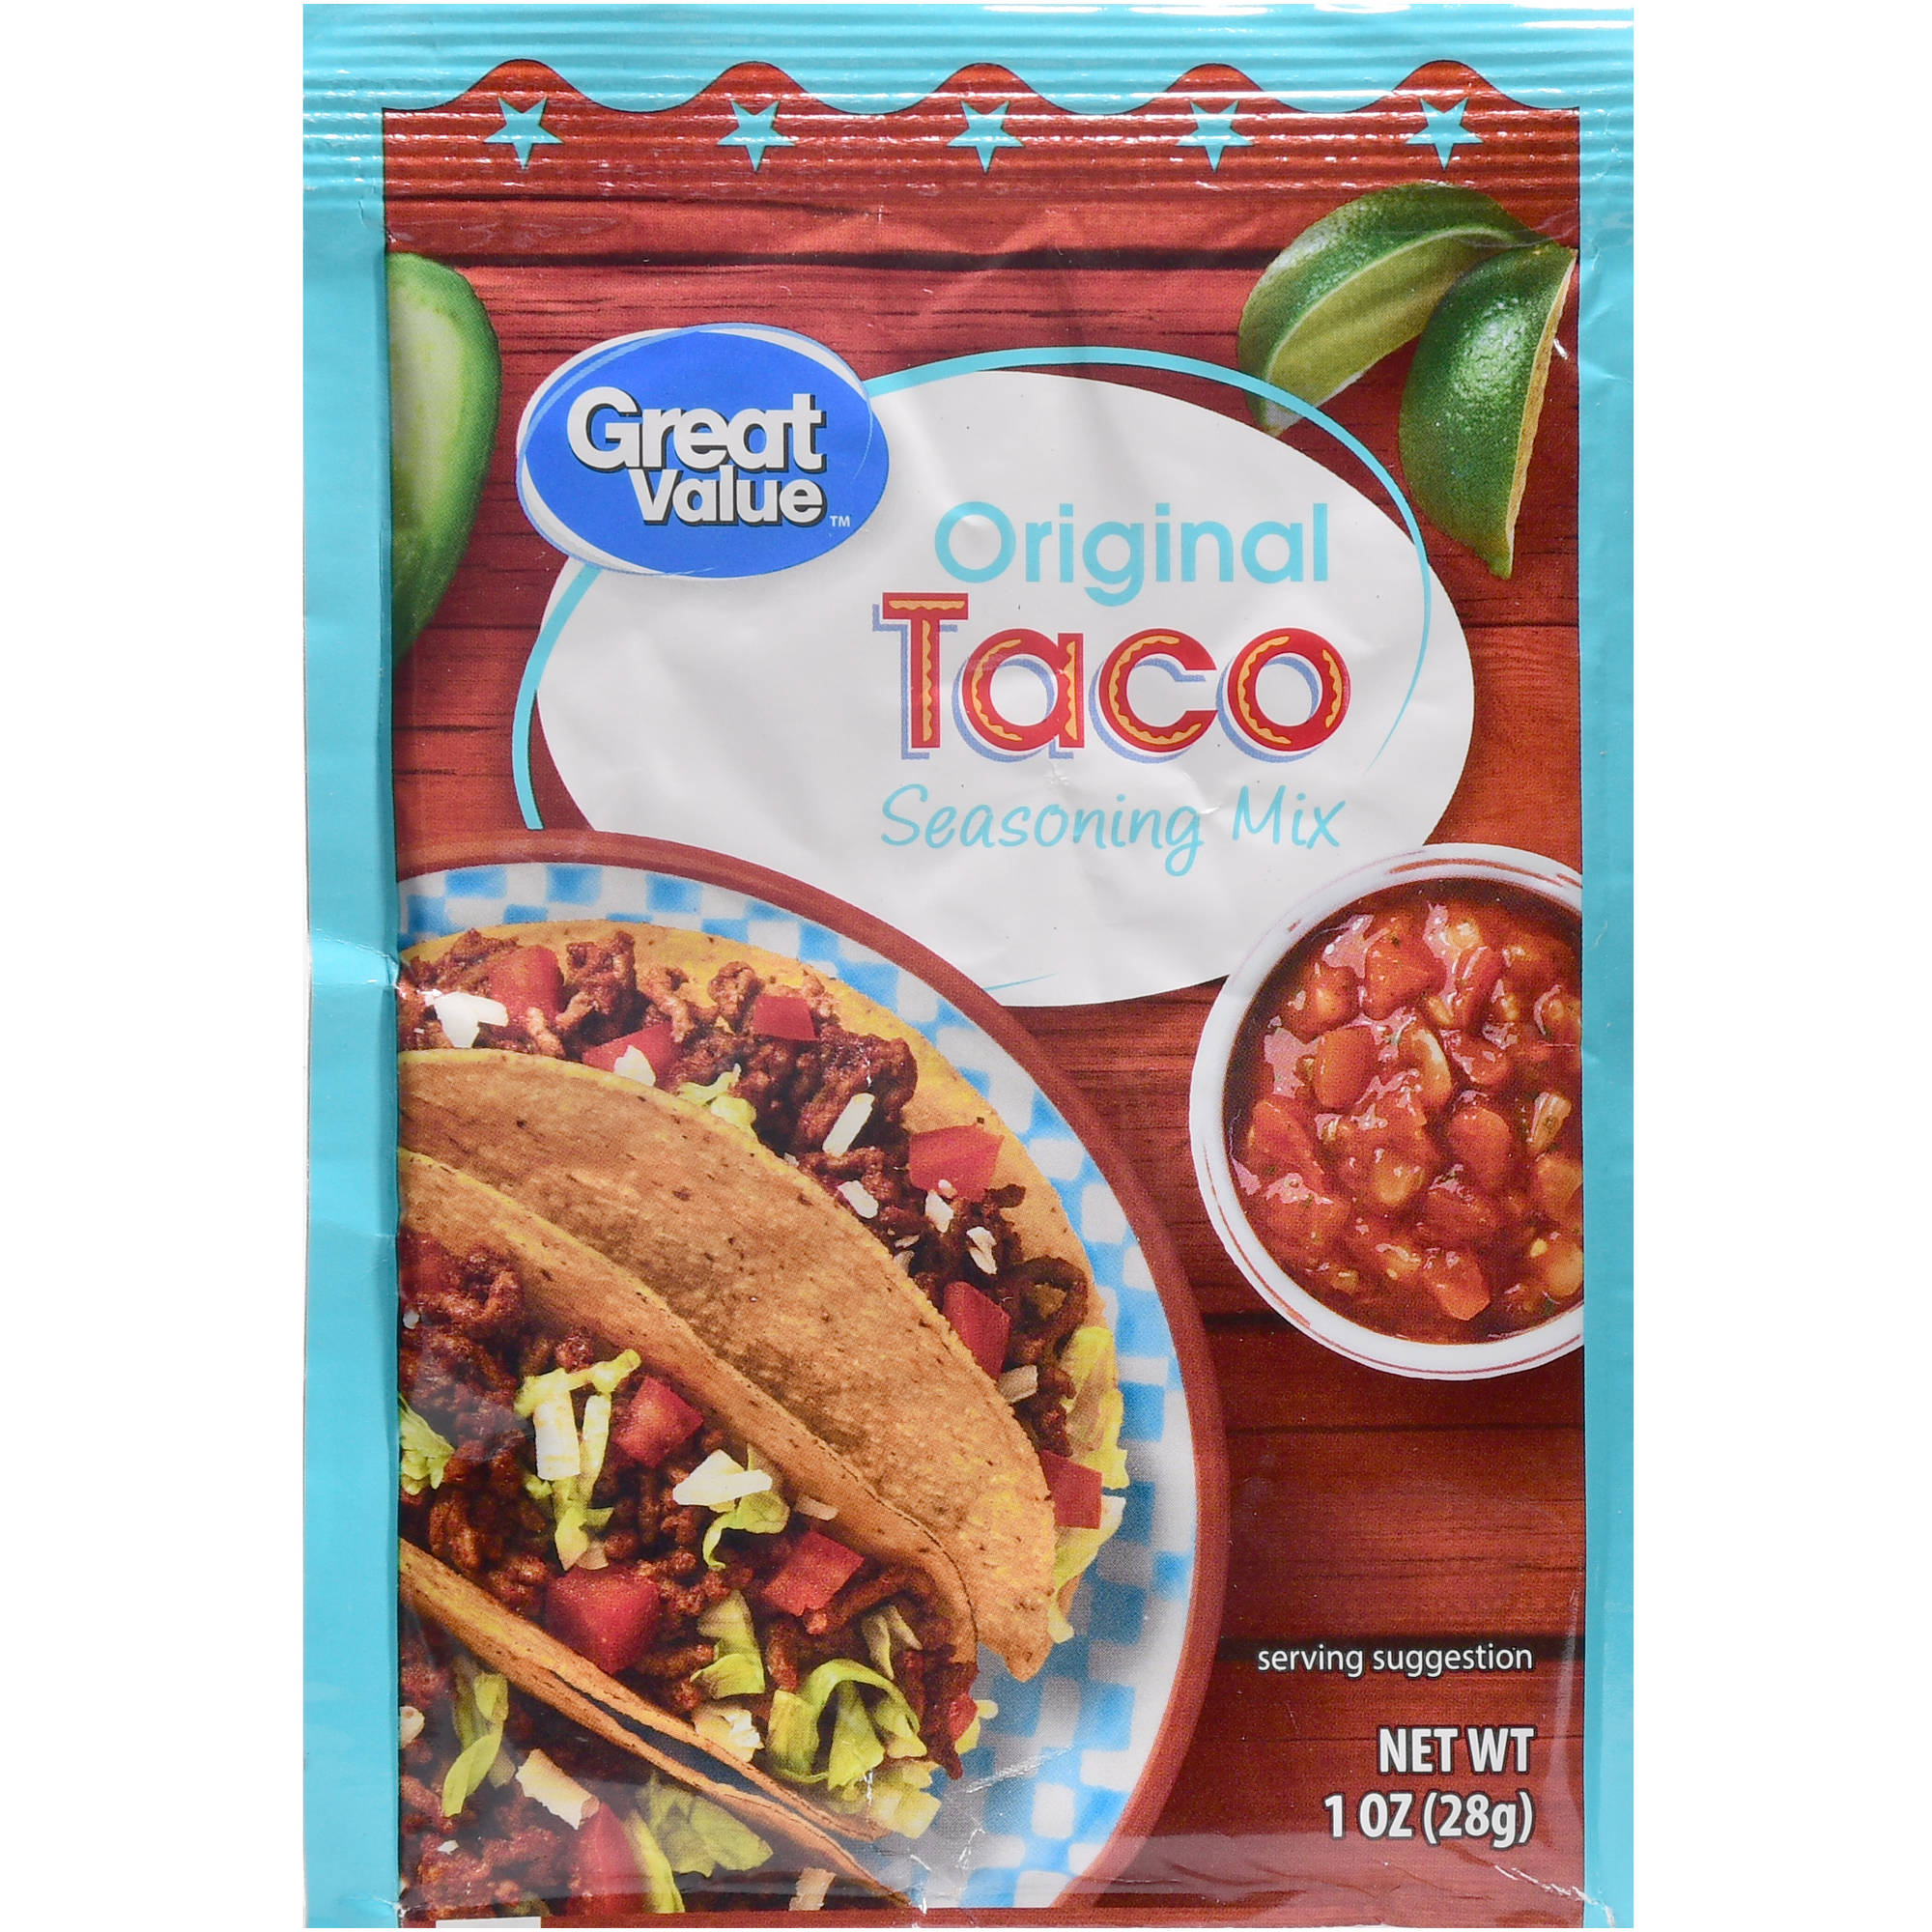 Great Value Taco Seasoning Mix, Original, 1 oz